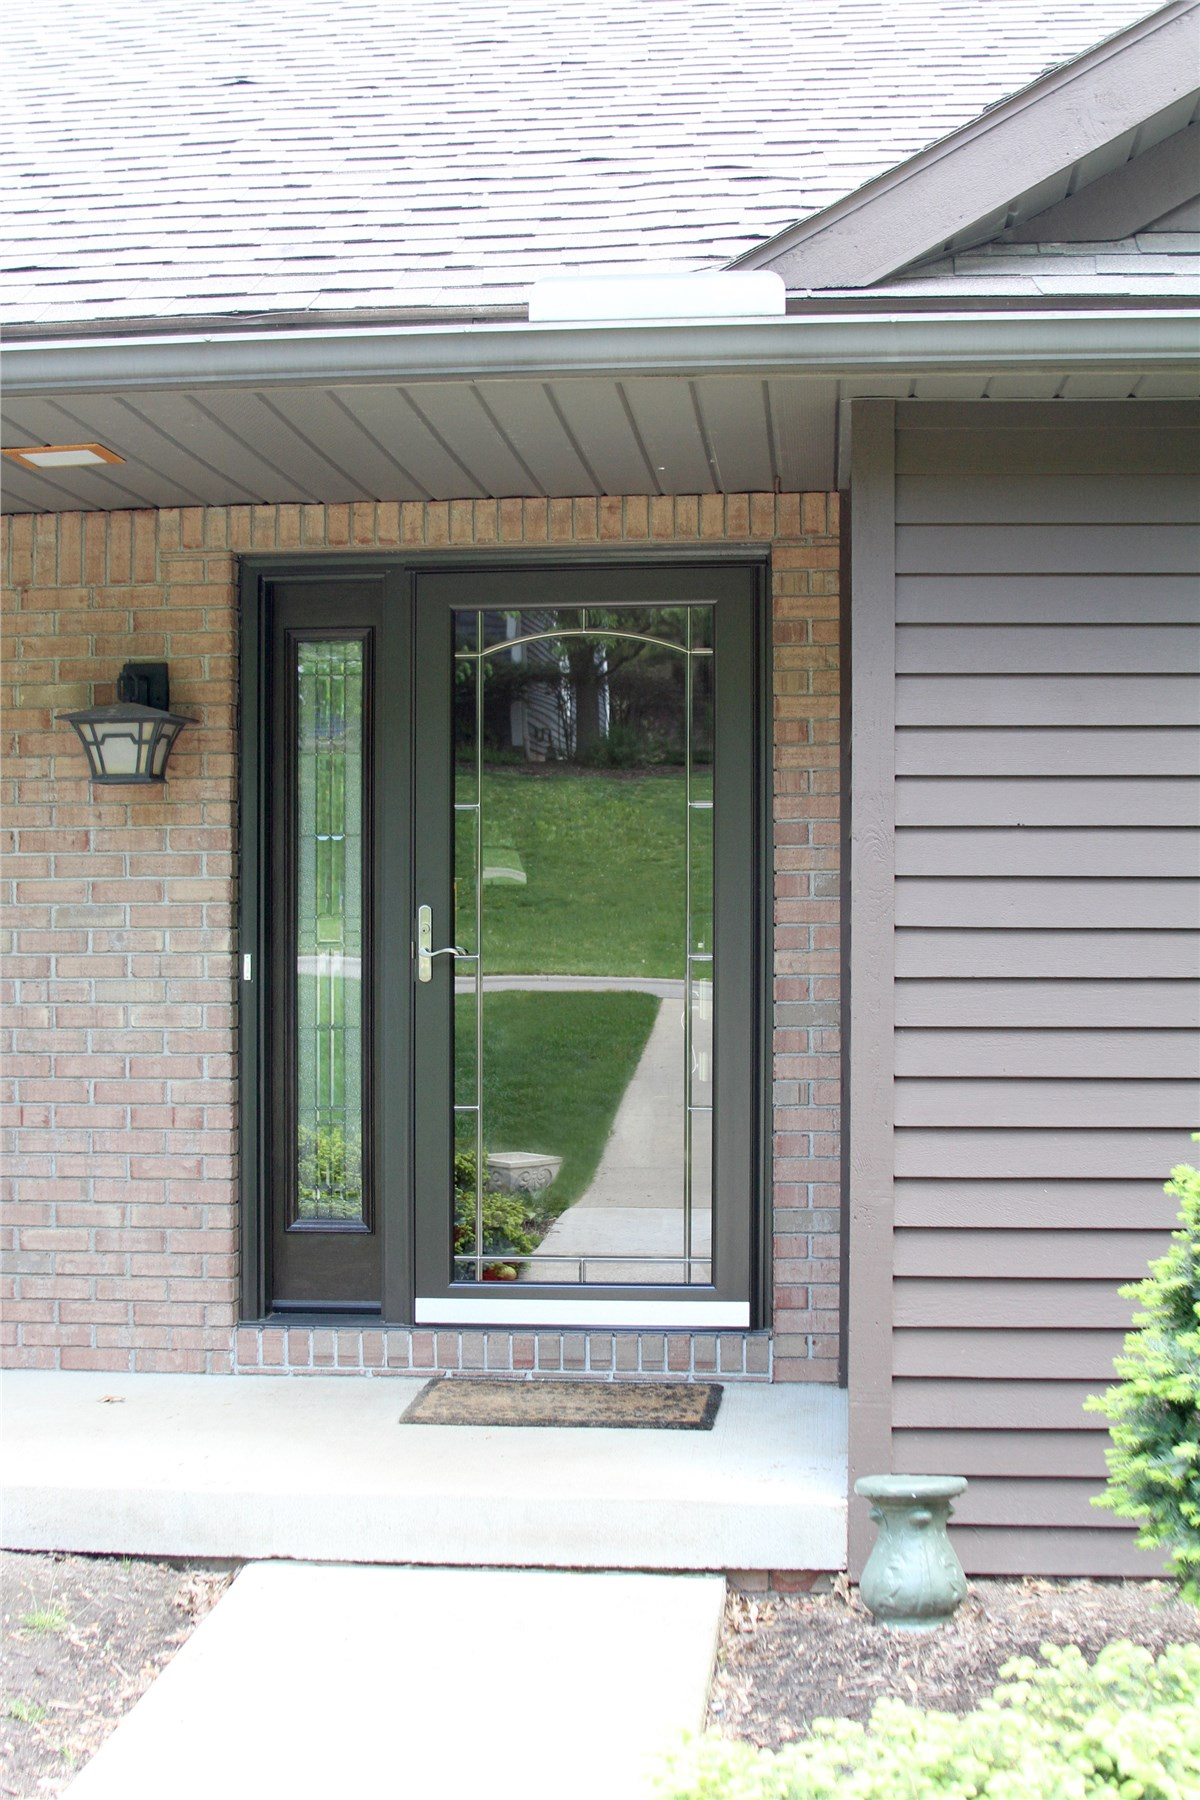 New England Storm Doors | Boston Storm Doors | NEWPRO